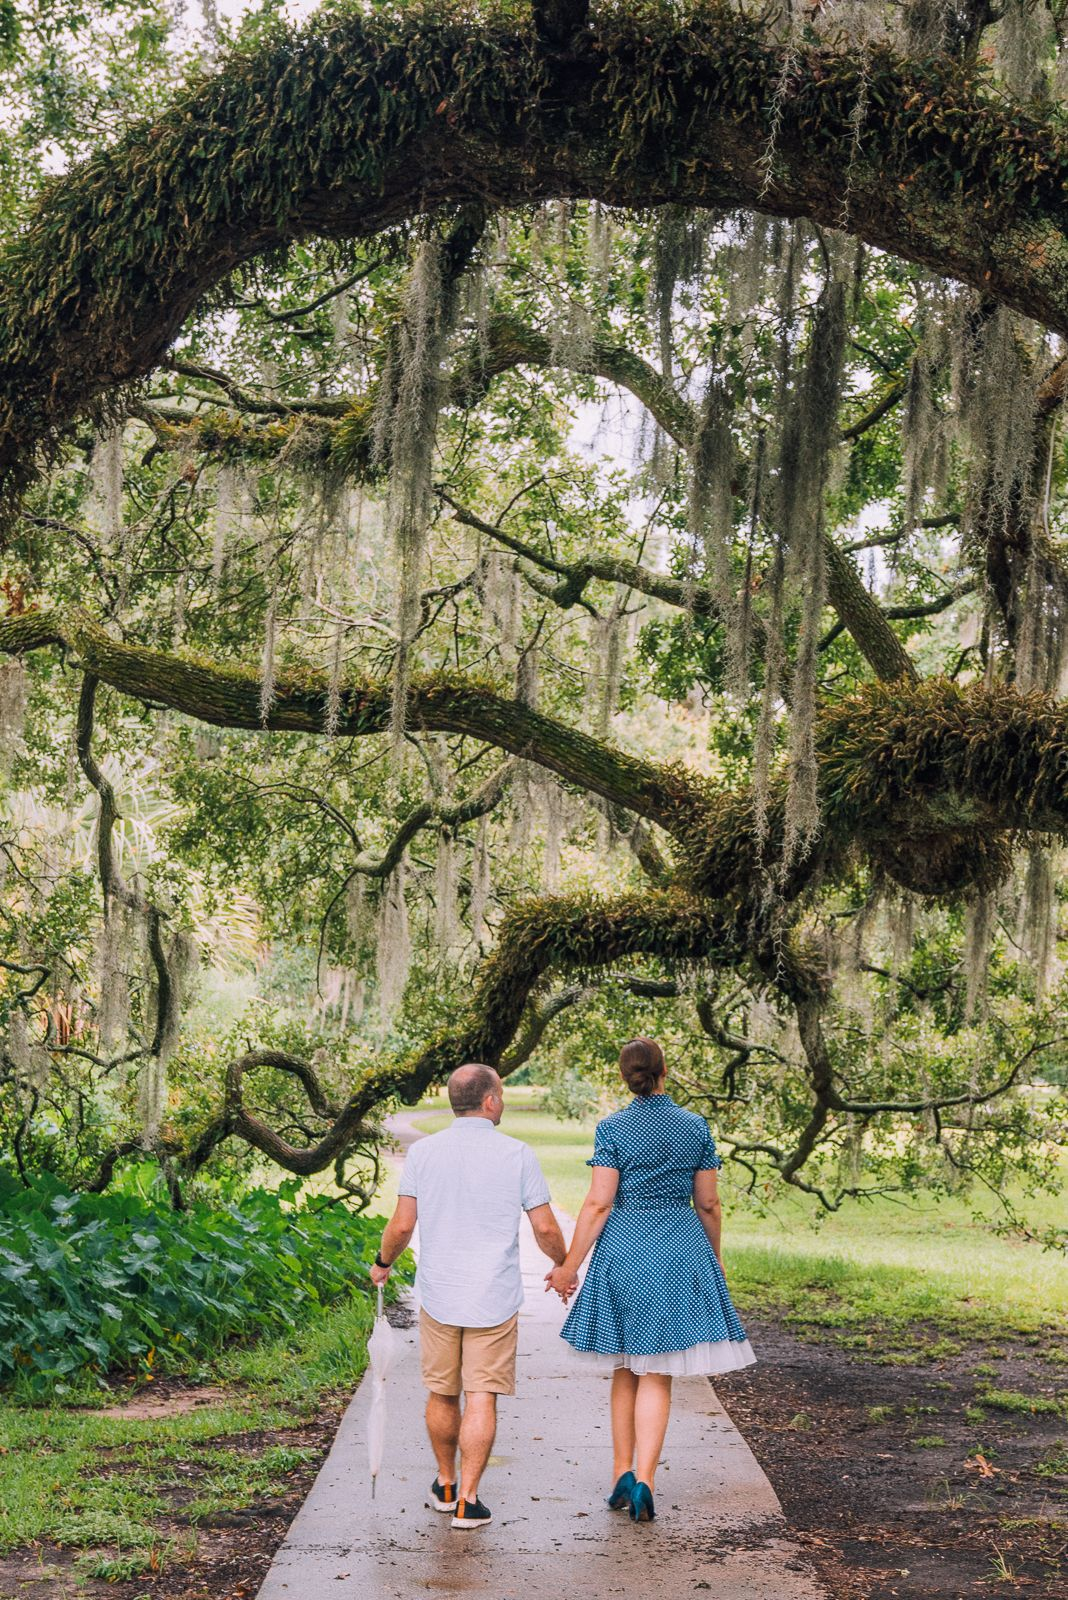 Newly engaged couple walking under huge oak tree